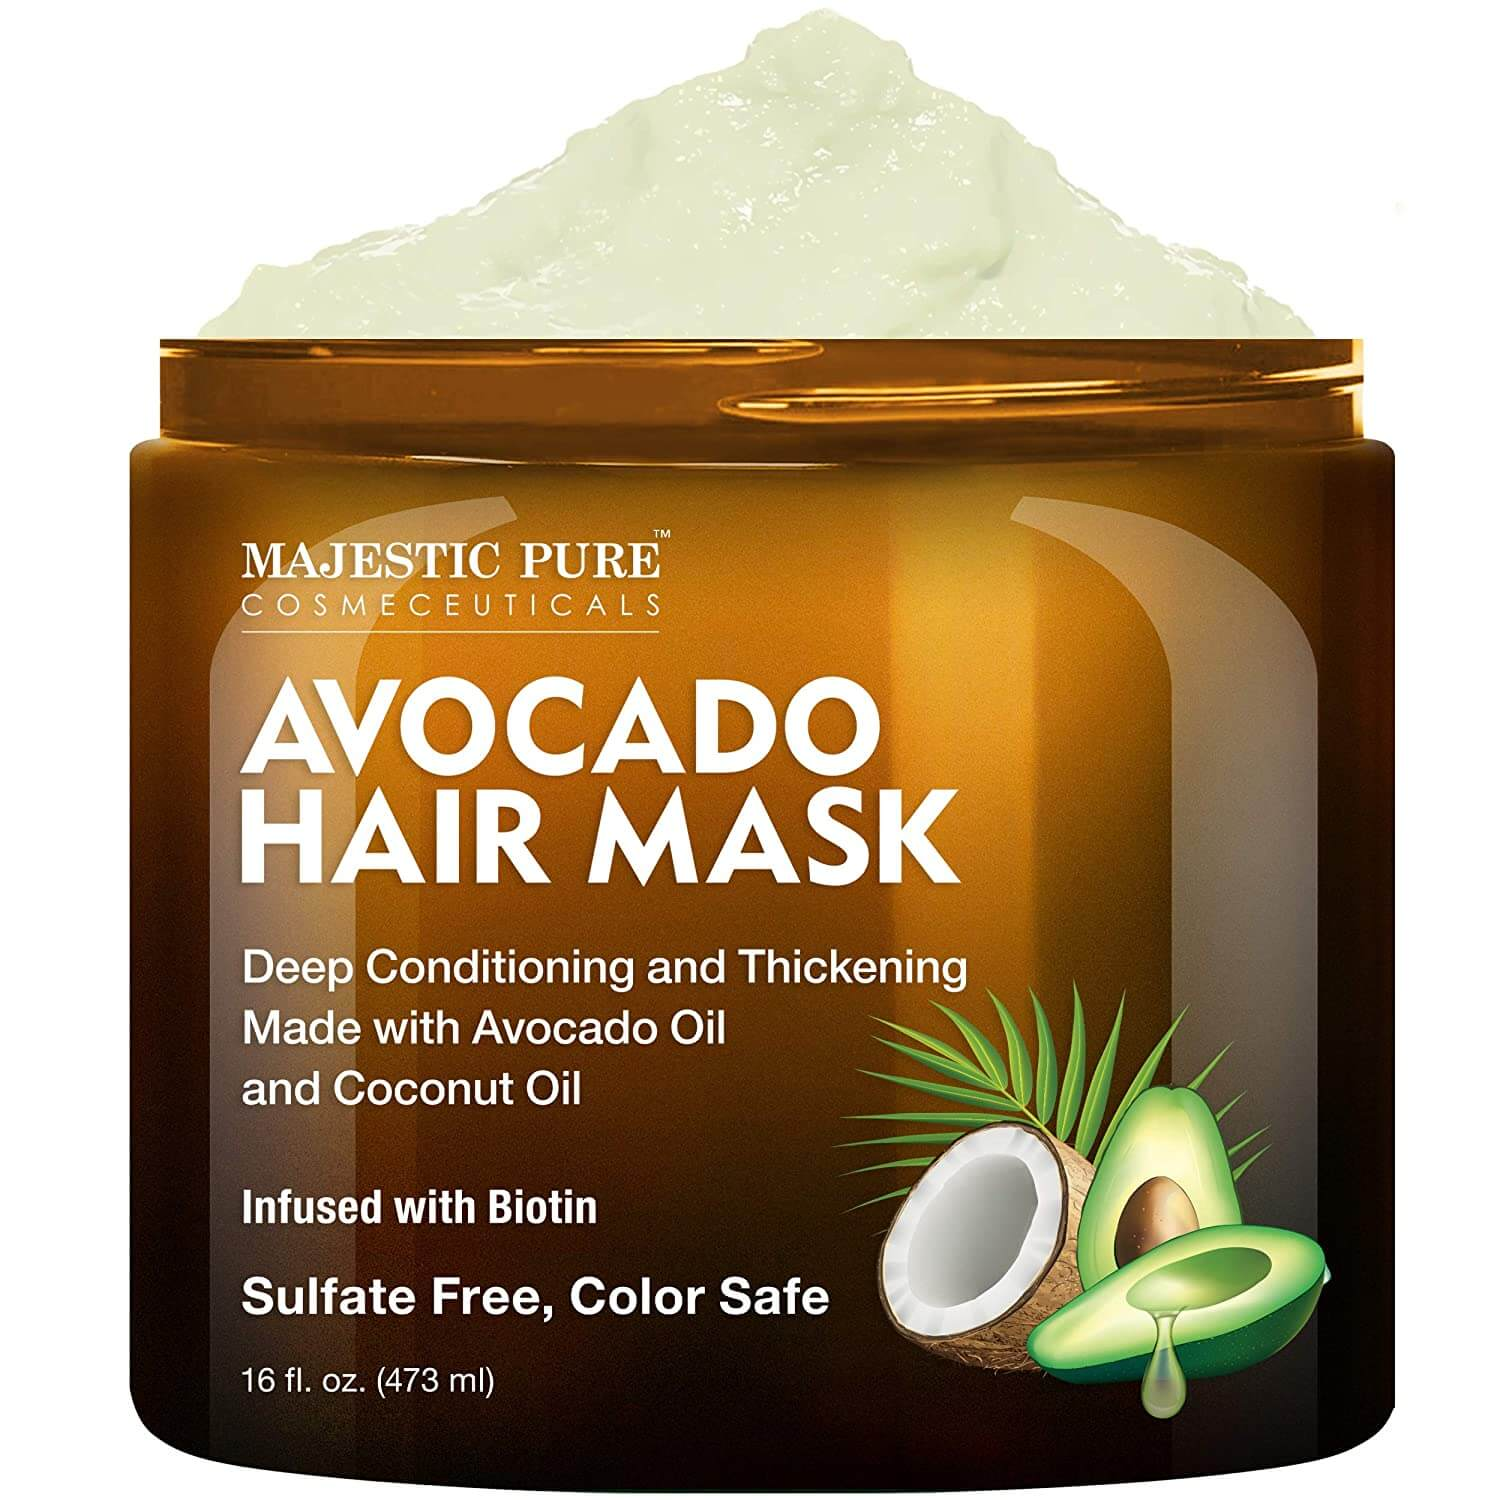 Avocado hair mask in a jar as one of the tips for healthy hair